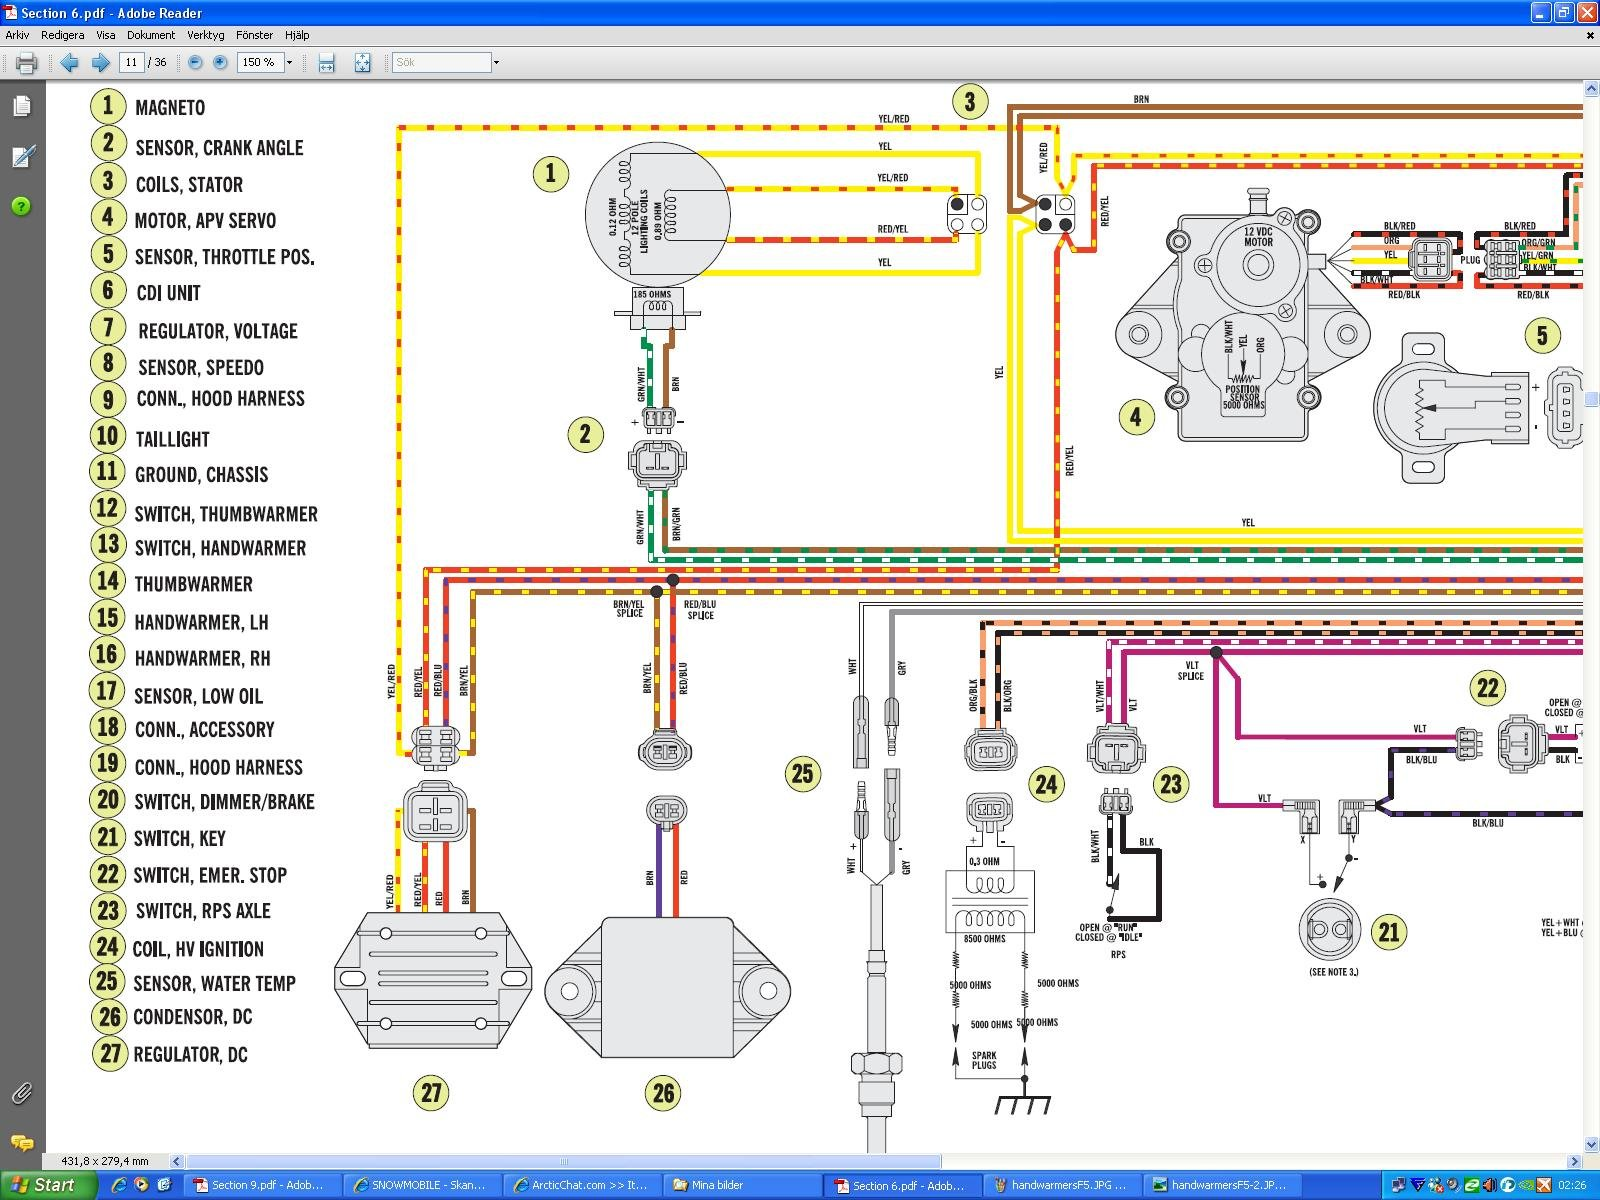 yamaha raptor 700 headlight wiring diagram of a sarcomere and muscle cell circuit wallpaper best library click image for larger version name handwarmersf5 3 jpg views 28725 2010